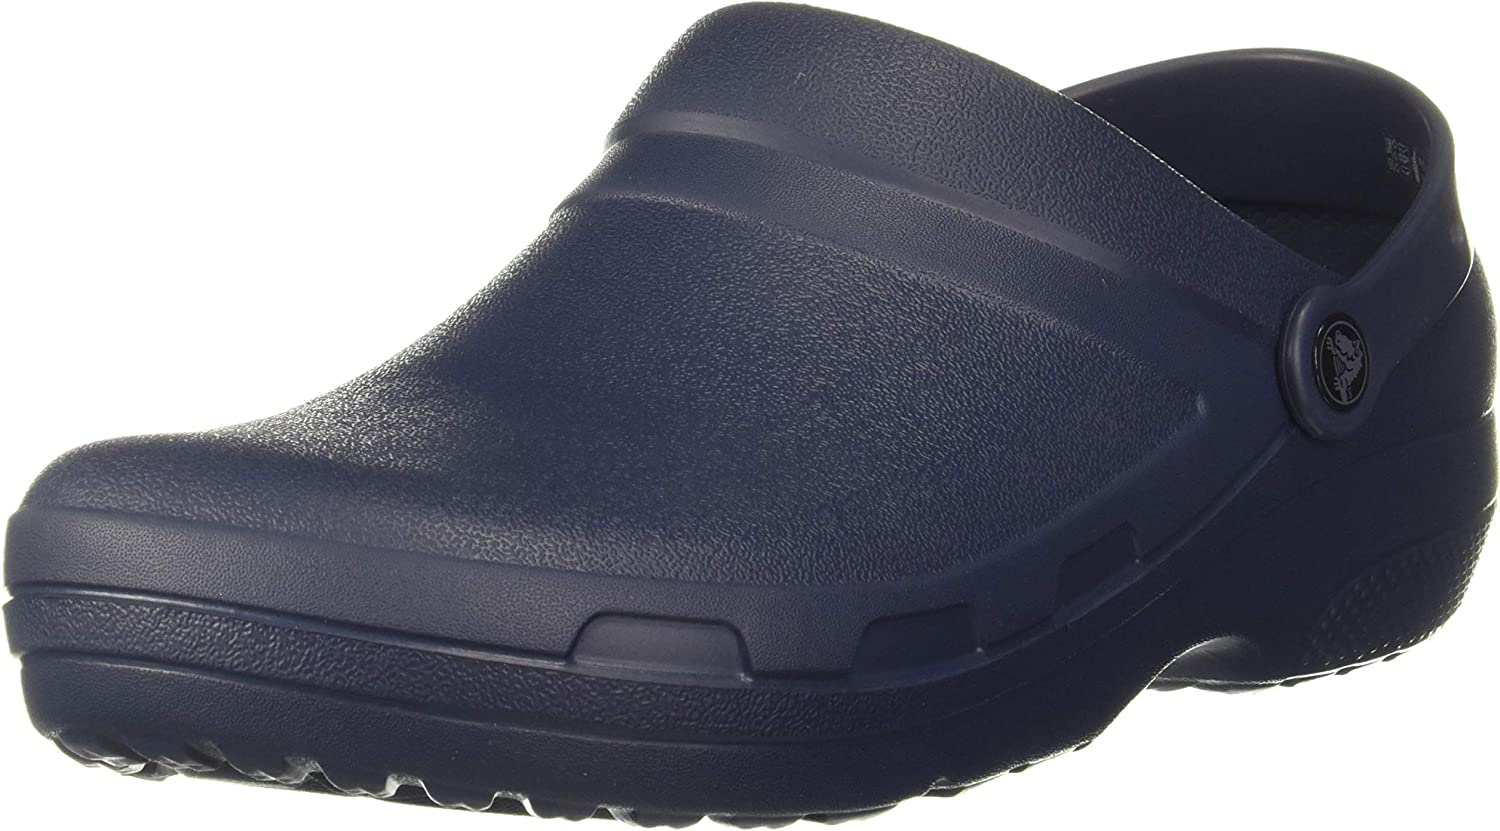 Top 7 Wide Garden Clogs For Men